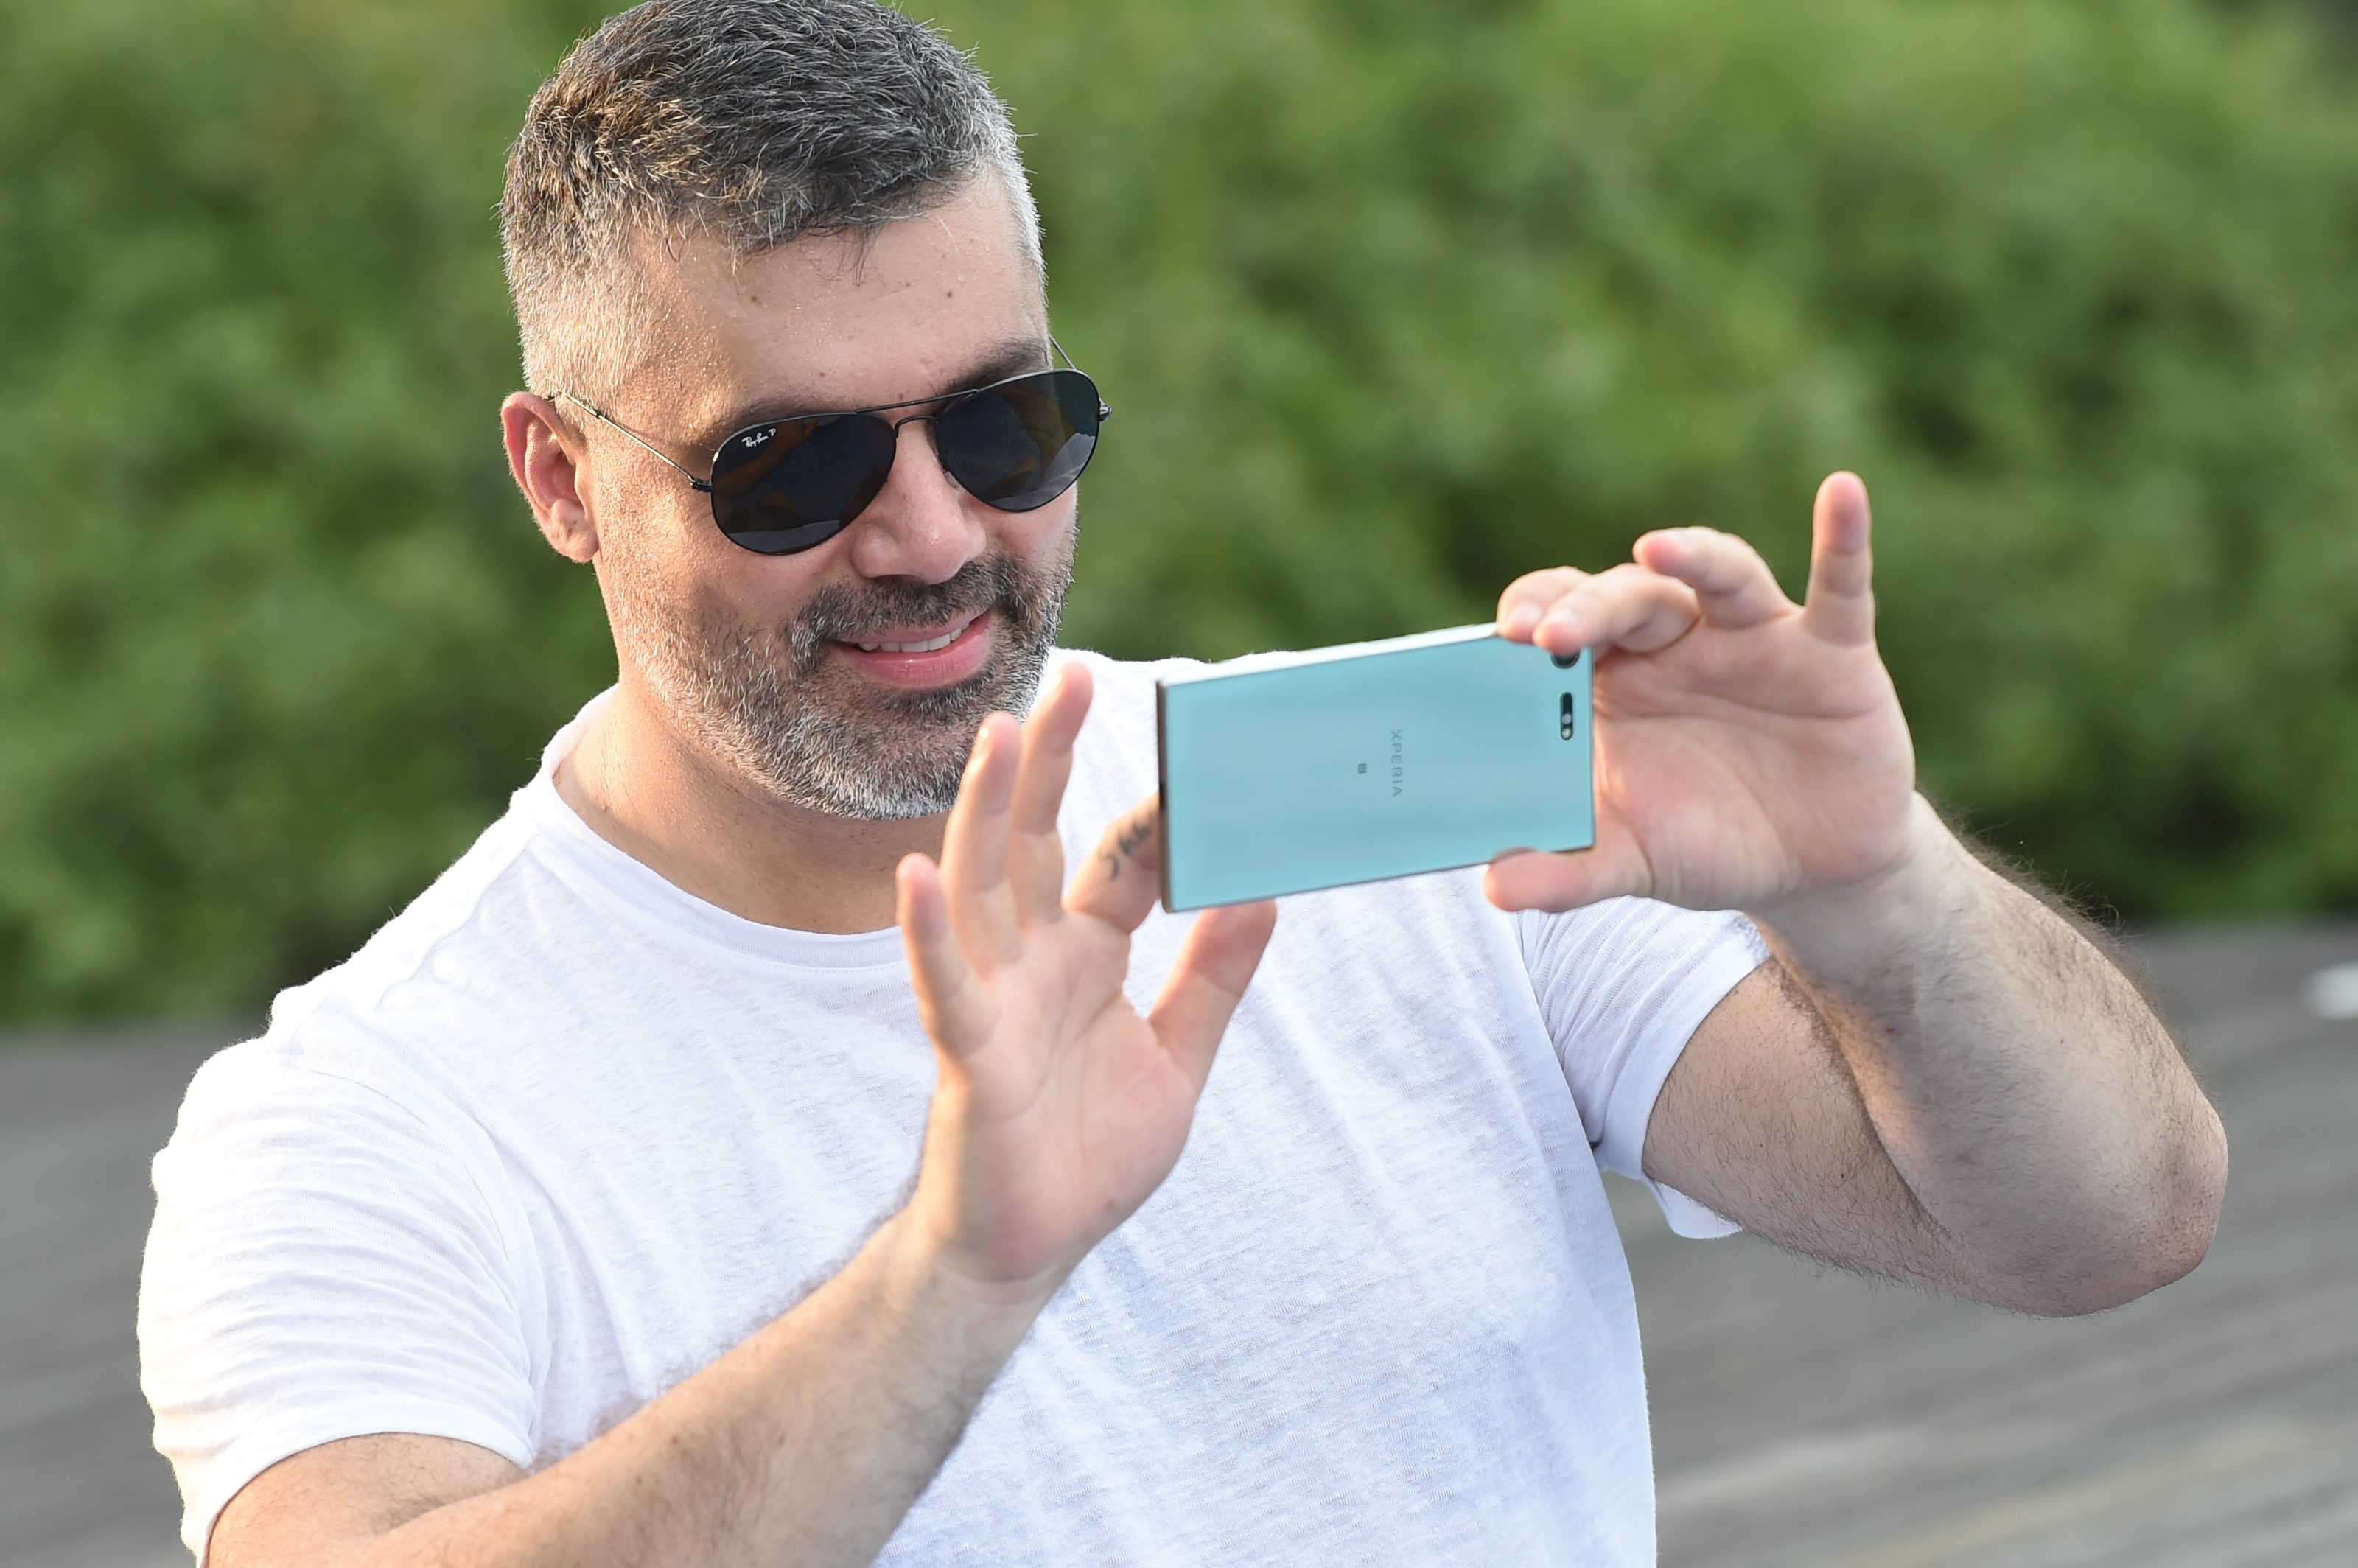 Sony Mobile Xperia Xz Premium Features In Arab Star Fares Karam S New Music Video Arab Motor World